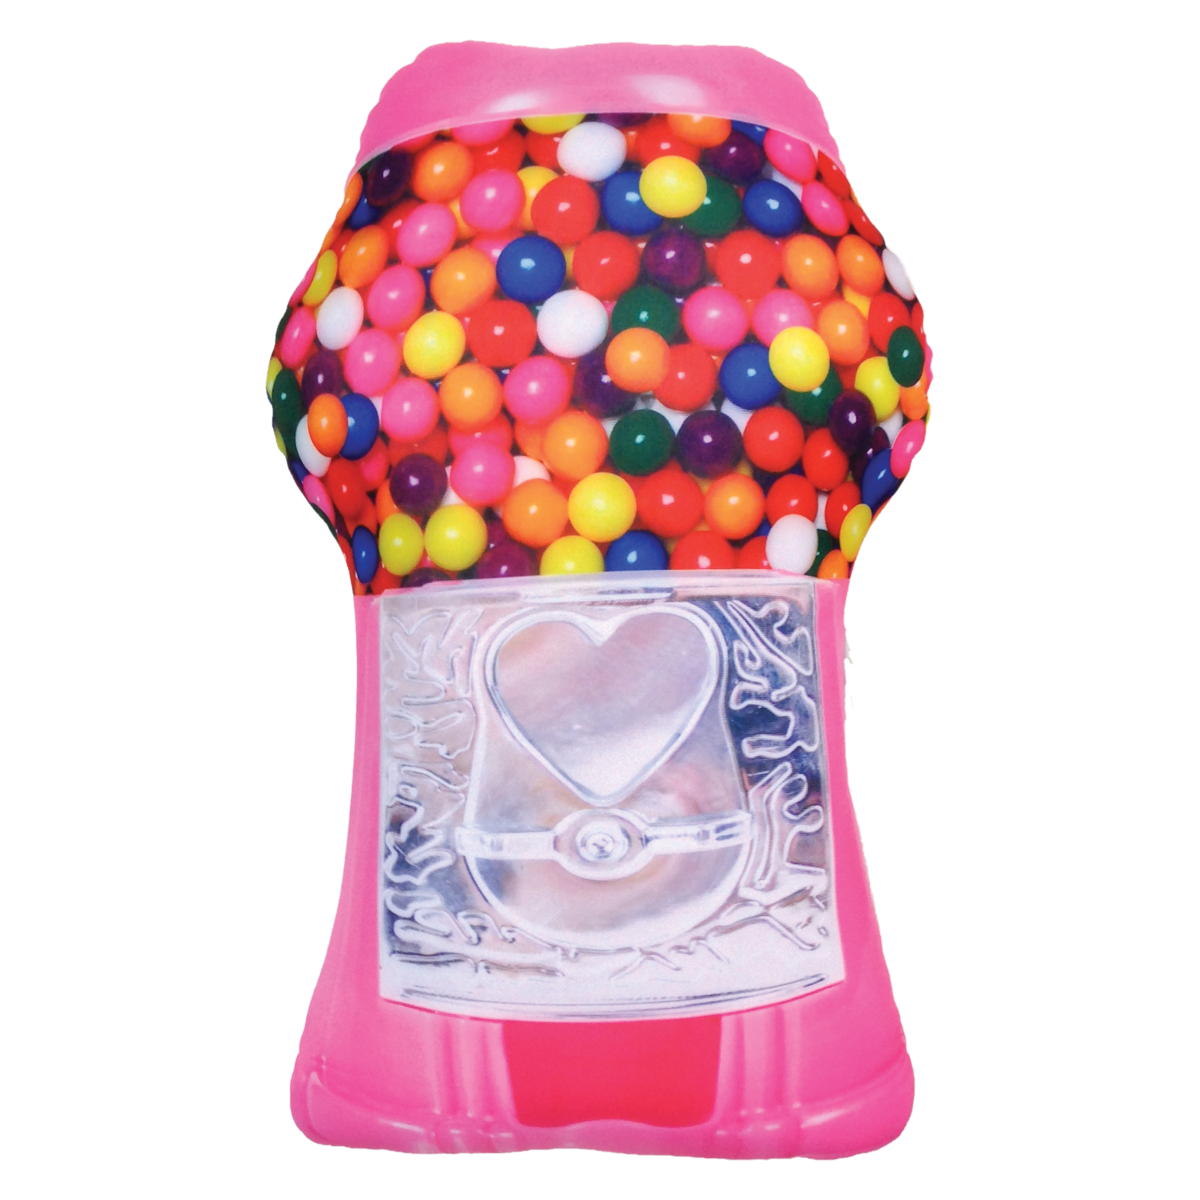 Picture Of Gumball Machine Scented Microbead Pillow Picture Of Gumball  Machine Scented Microbead Pillow PlusPng.com  - Bubble Gum PNG